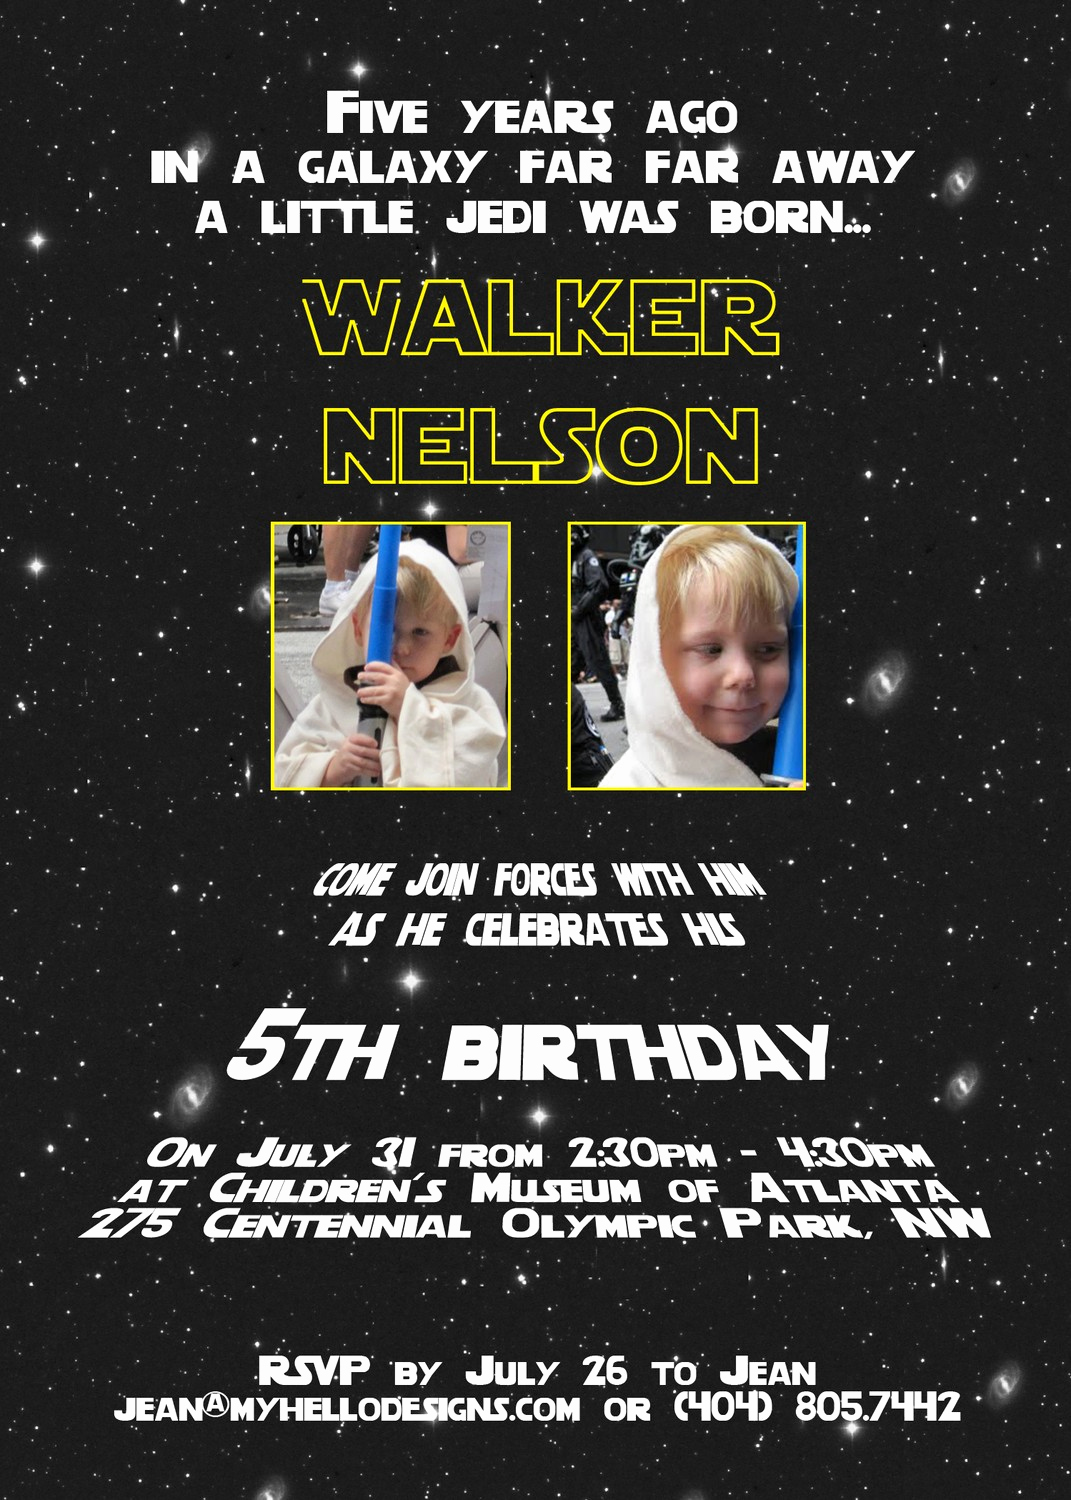 Star Wars Invitation Wording Unique Star Wars Birthday Invitations Wording